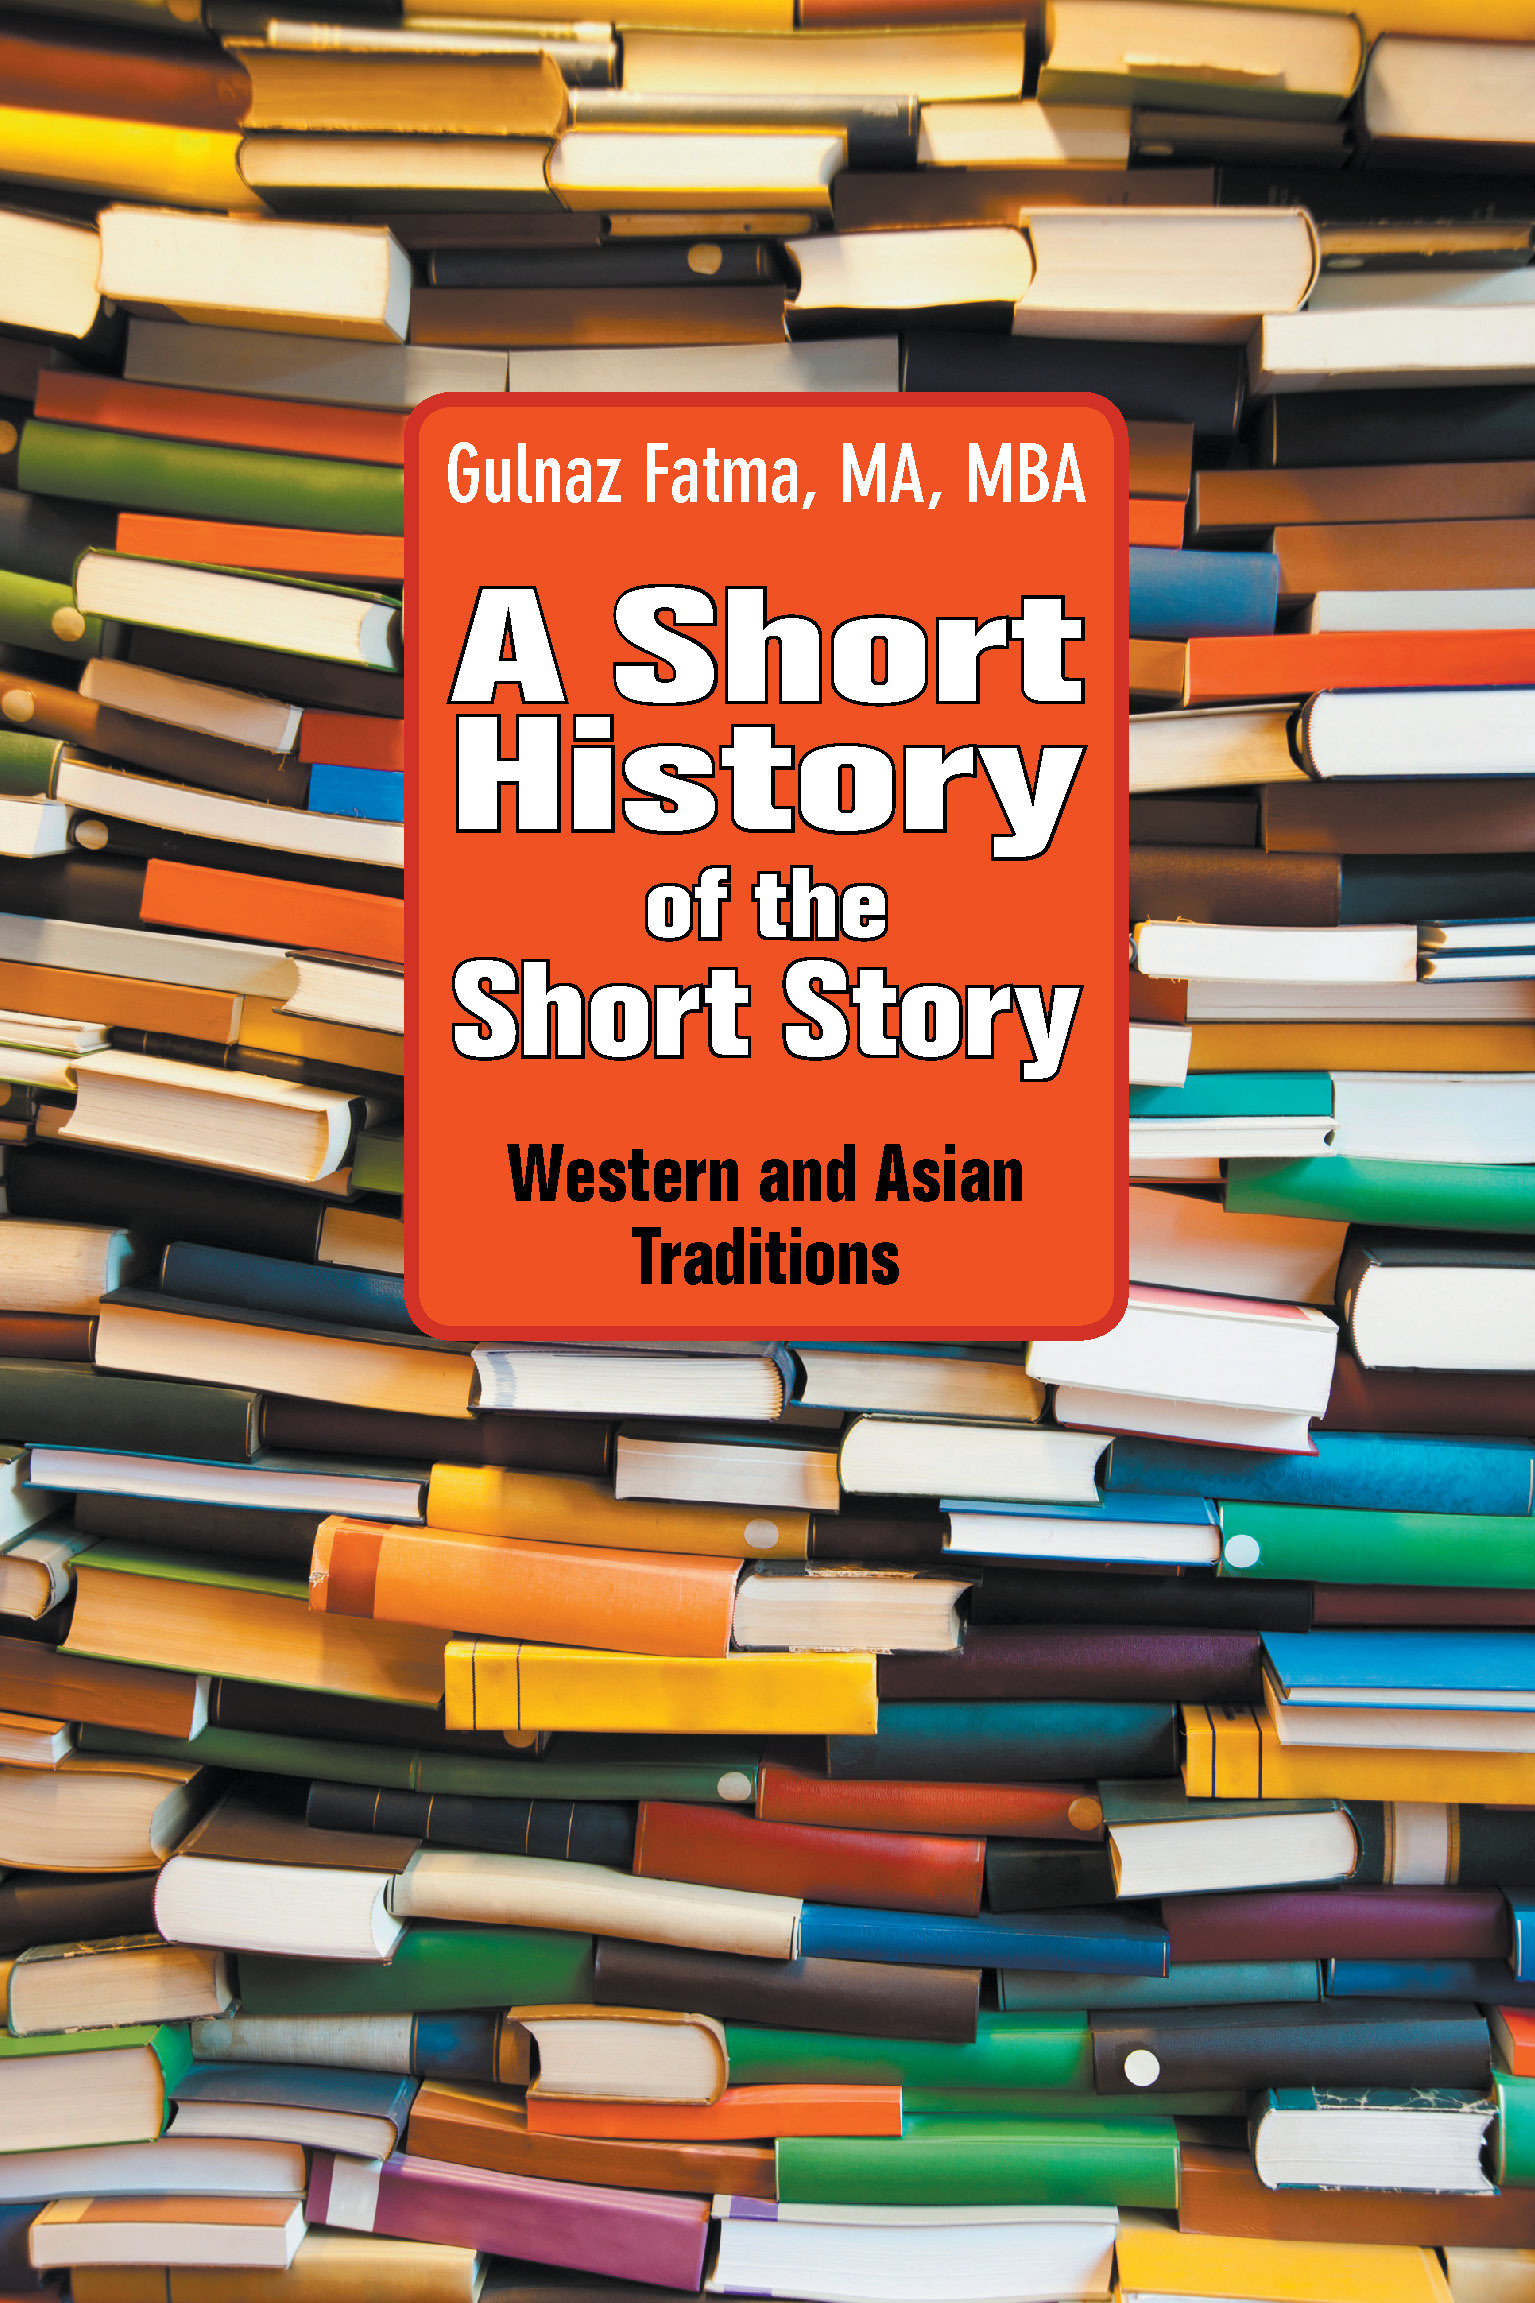 A Short History of the Short Story: Western and Asian Traditions 978-1-61599-166-2